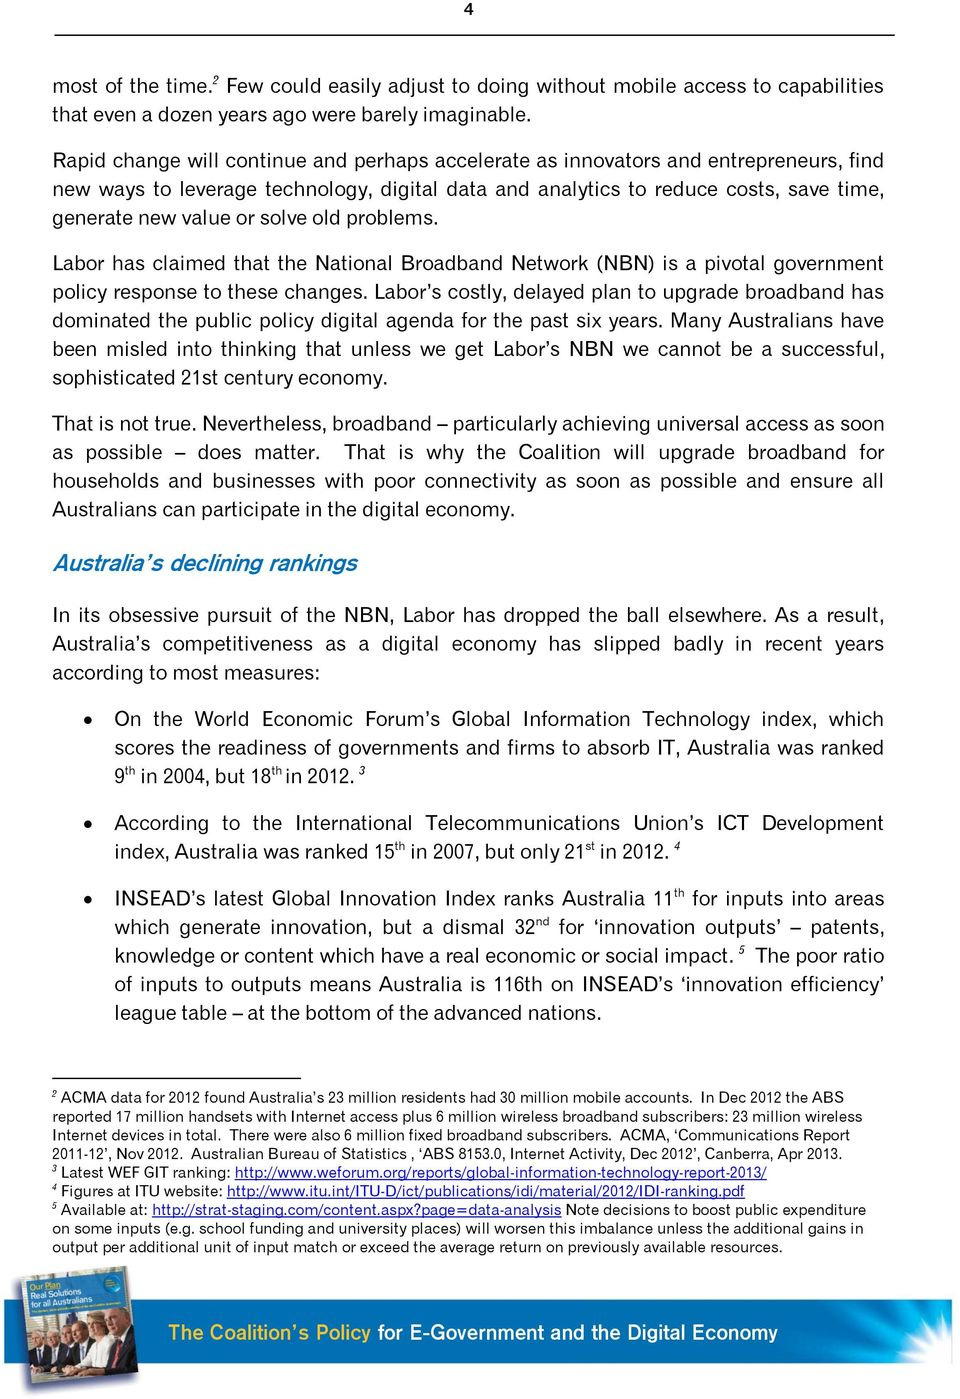 solve old problems. Labor has claimed that the National Broadband Network (NBN) is a pivotal government policy response to these changes.